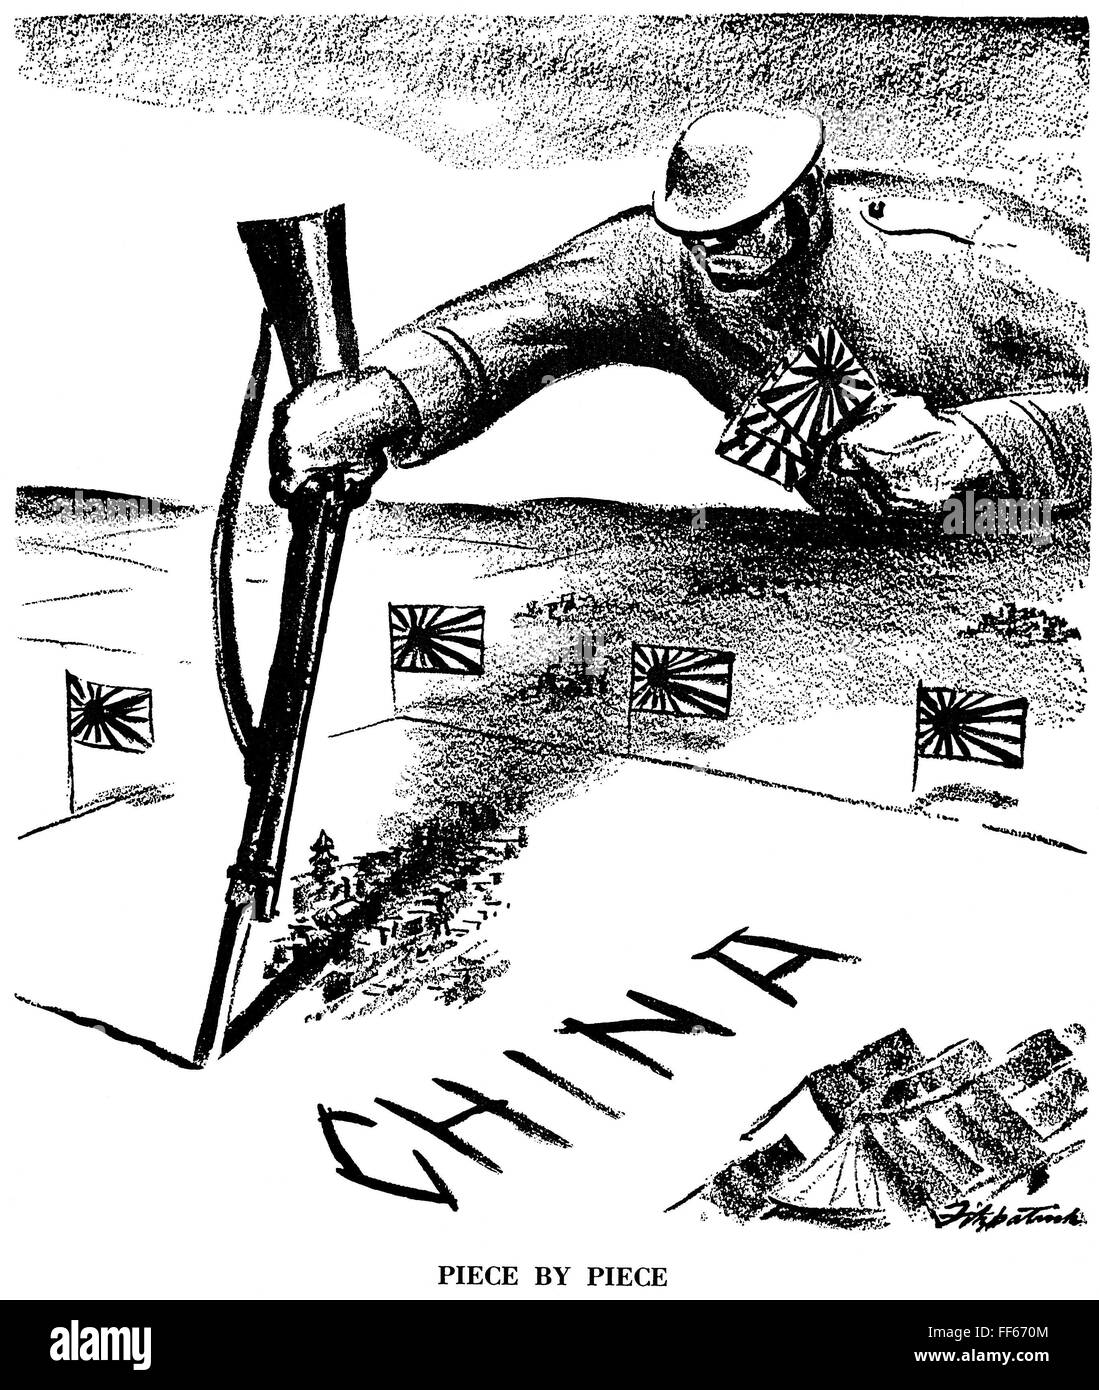 Japan Imperialism N Piece By Piece American Cartoon By Stock Photo